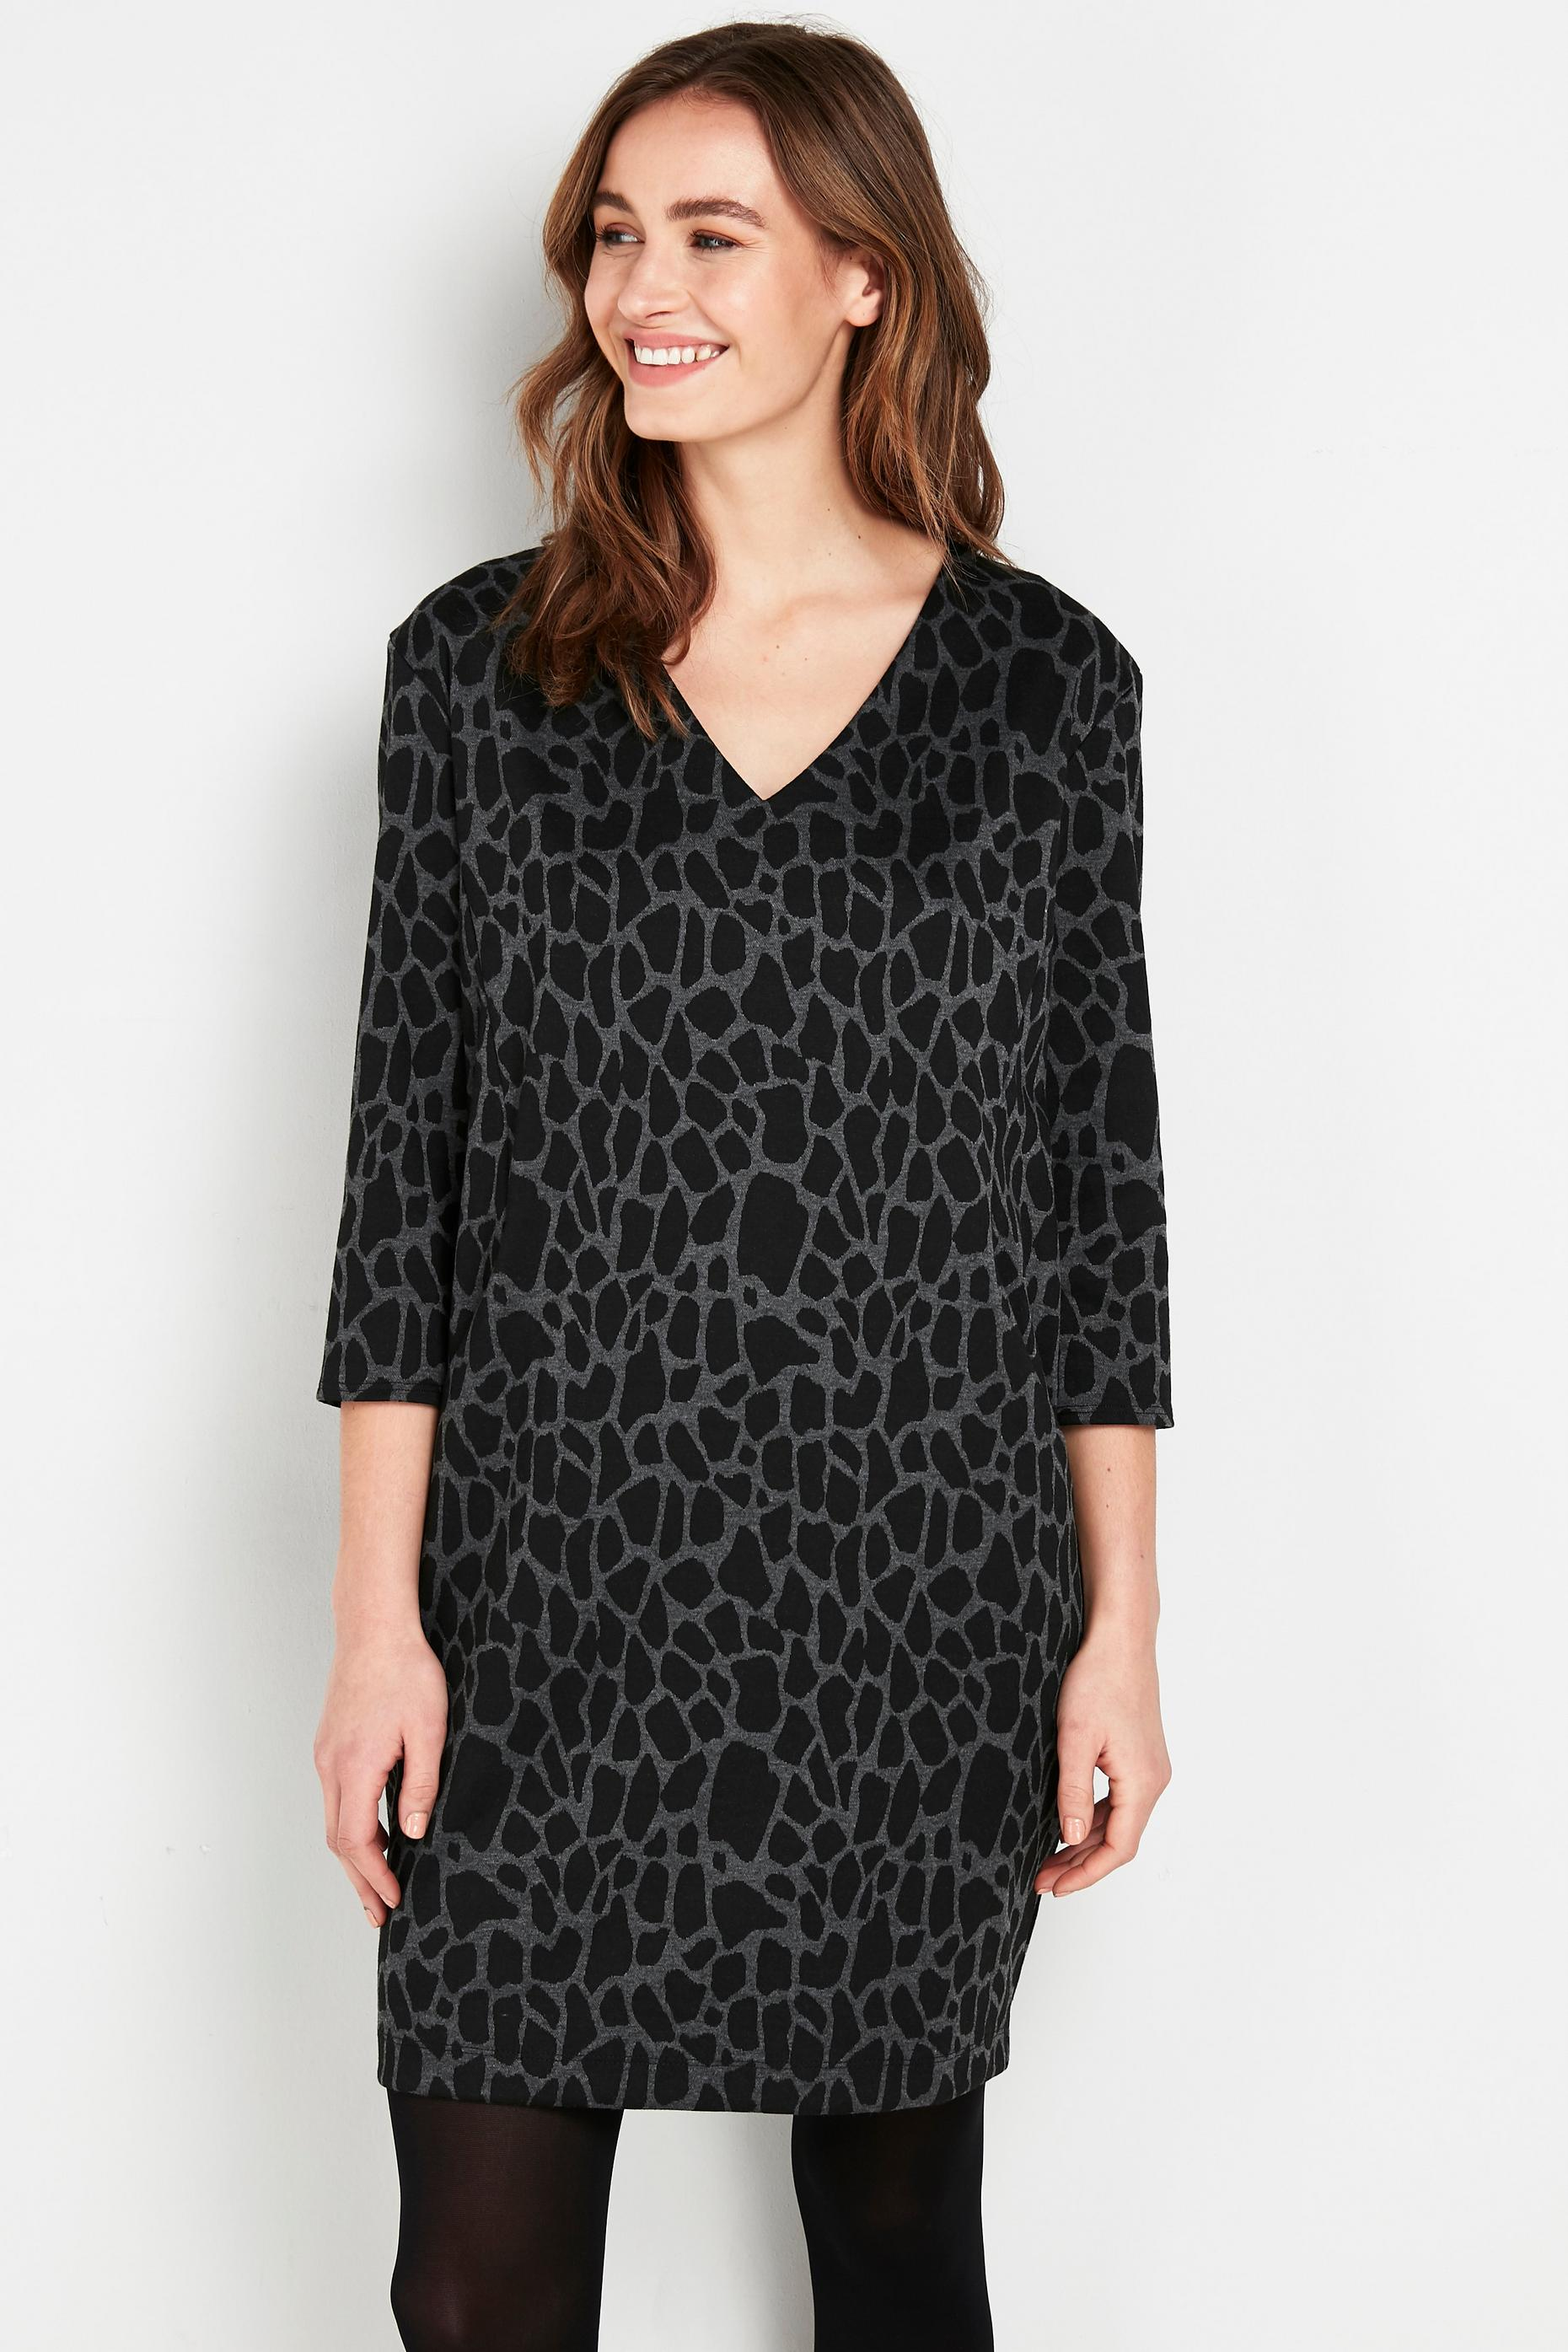 Grey Animal Print Jacquard Dress